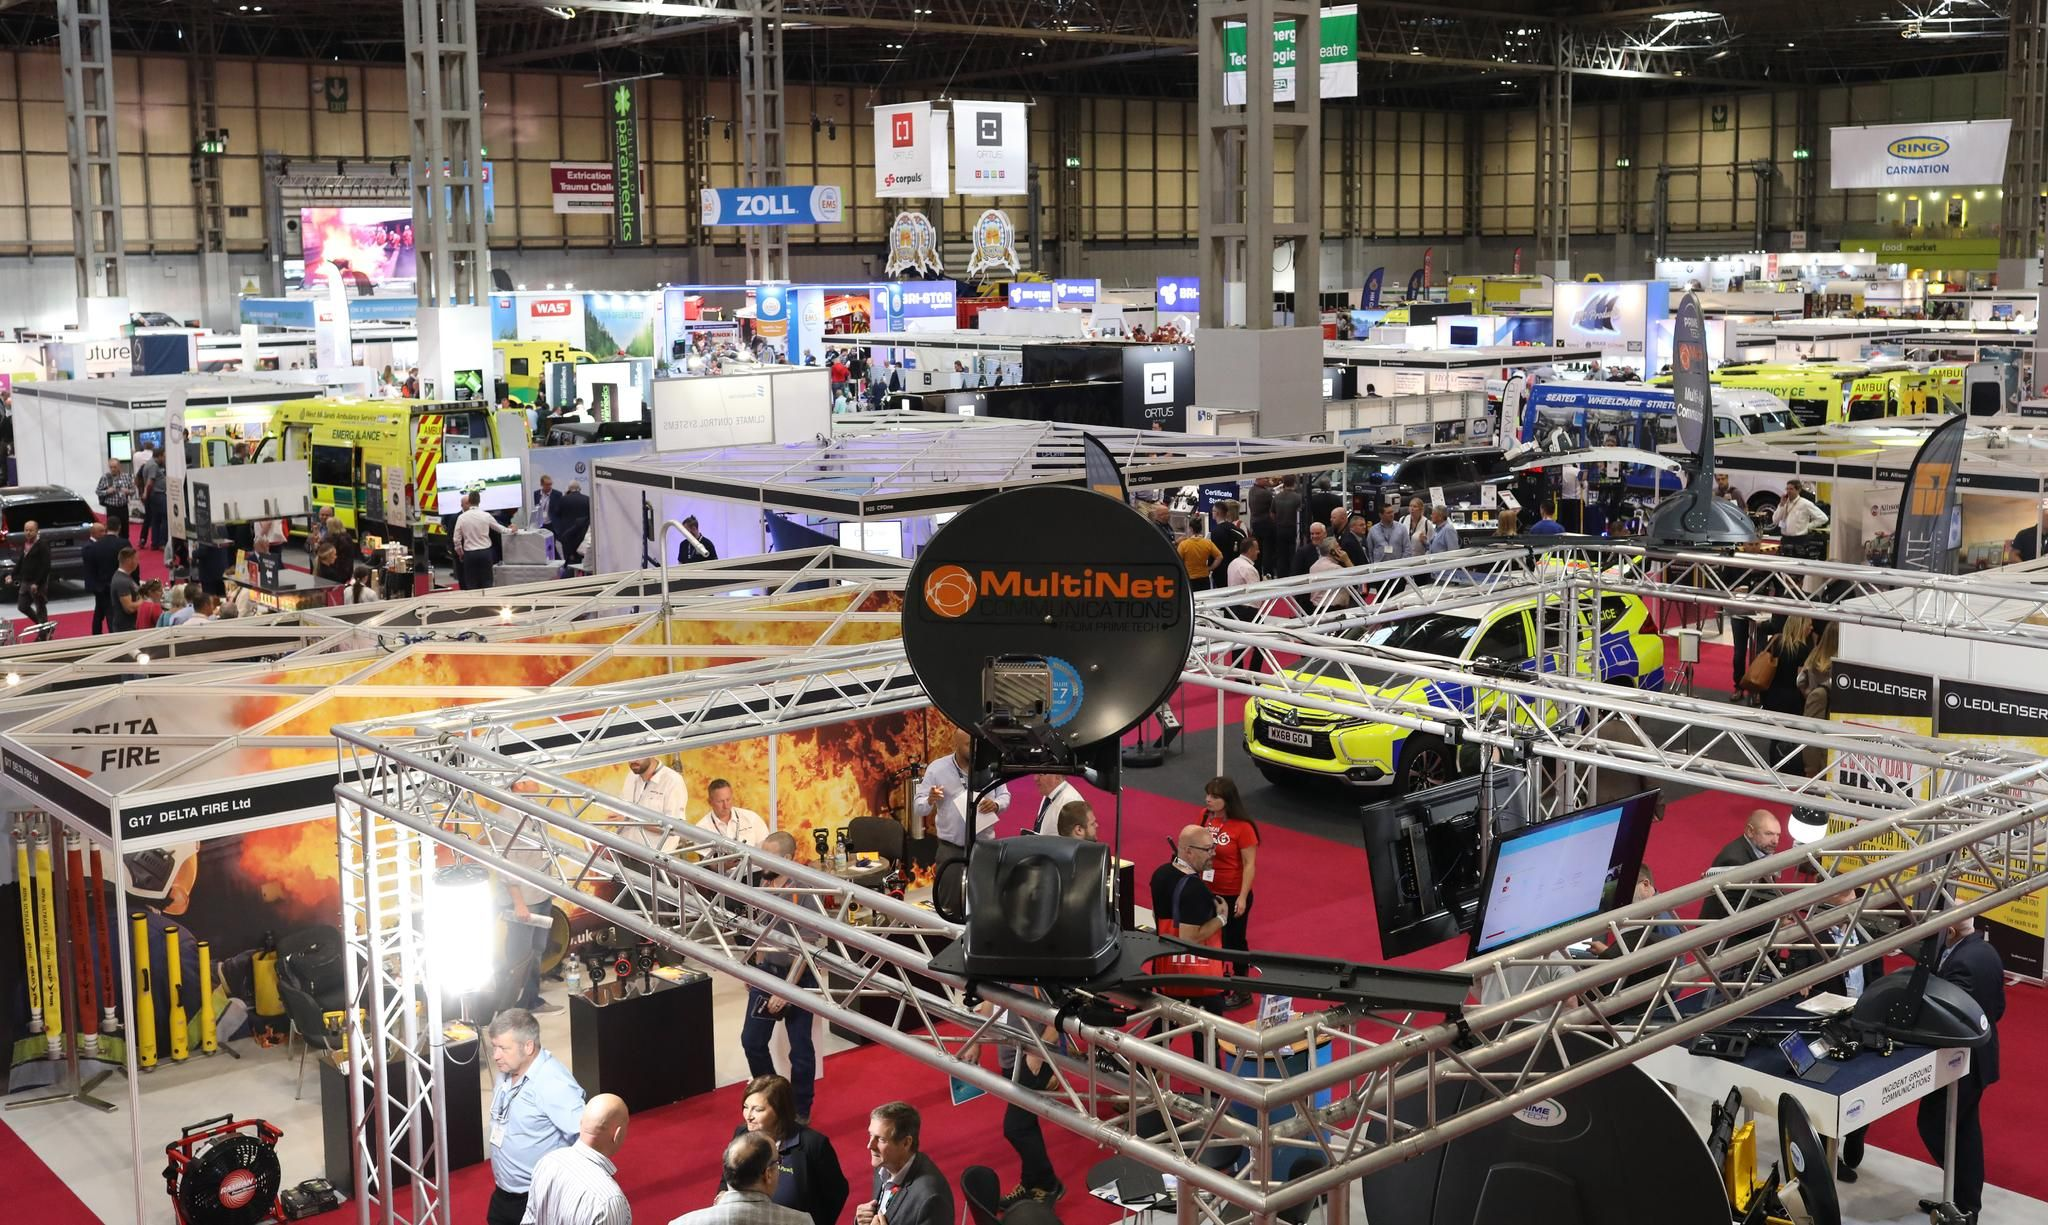 10,000+ VISITORS FROM THE EMERGENCY SERVICES SECTOR